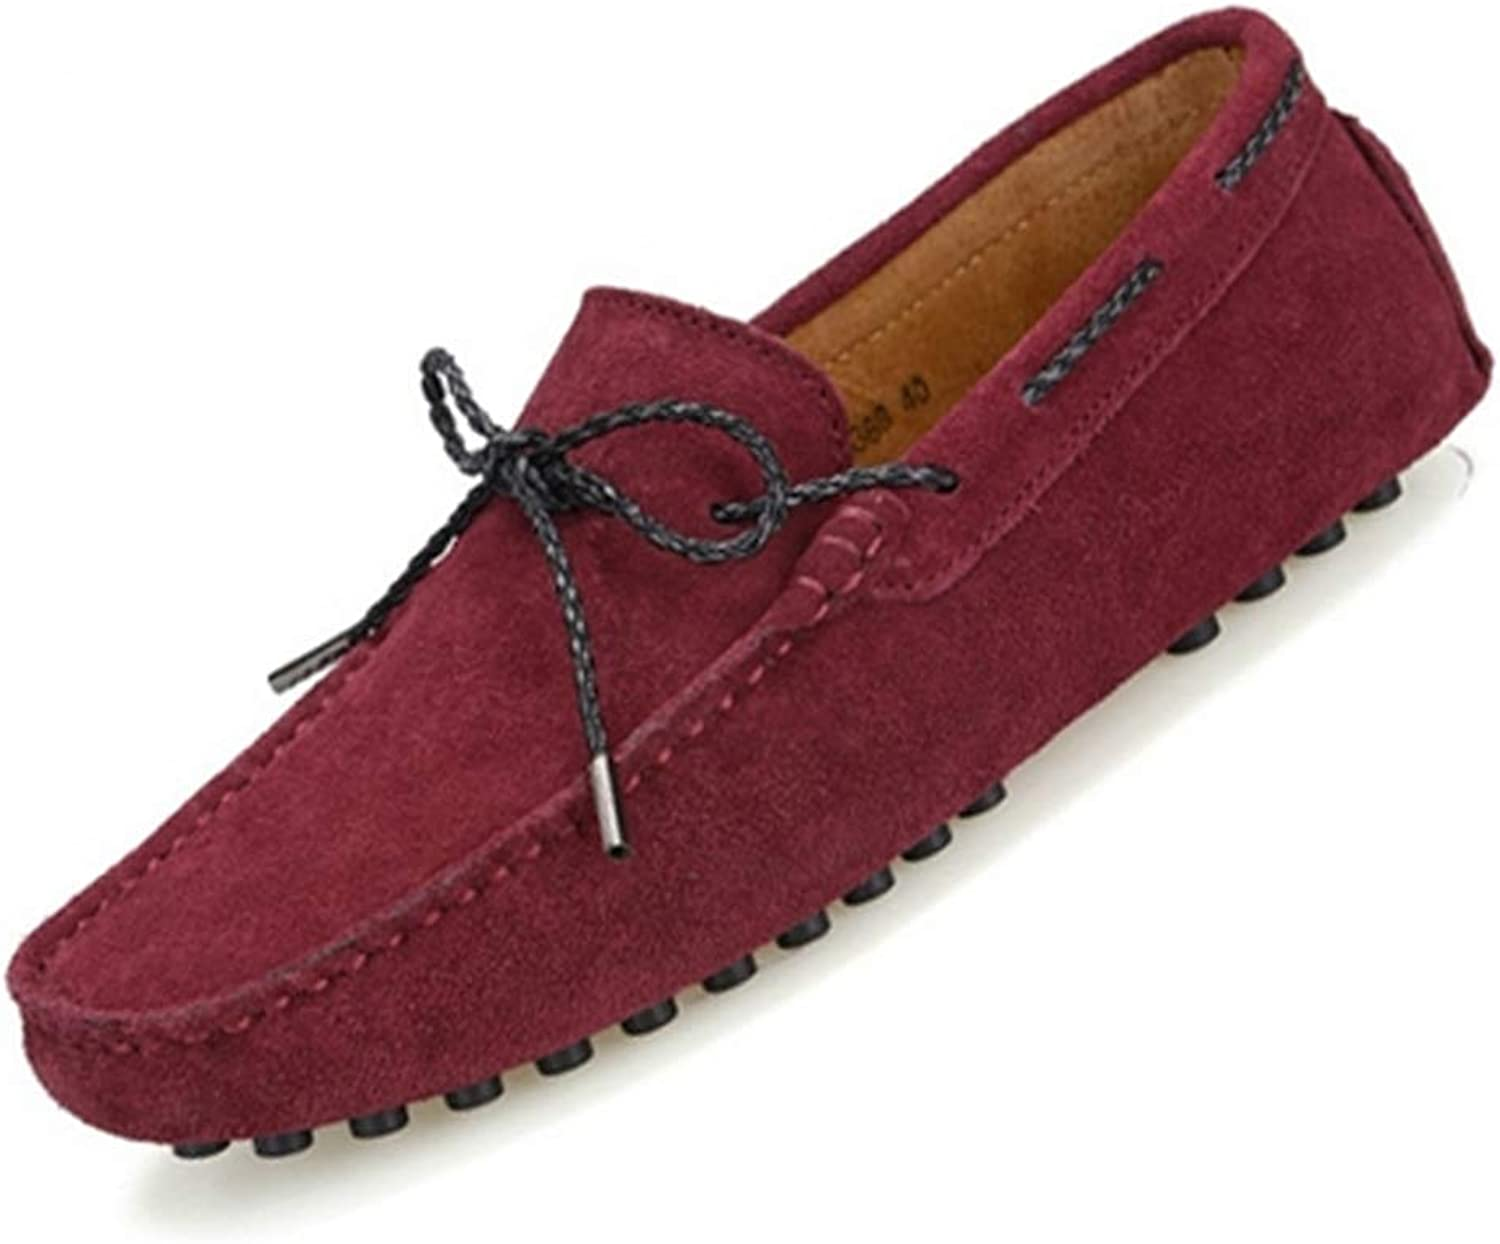 ZHRUI Man Moccasin Fashion Style Solid Adults Loafers Men Driving shoes (color   Wine red, Size   7=41 EU)